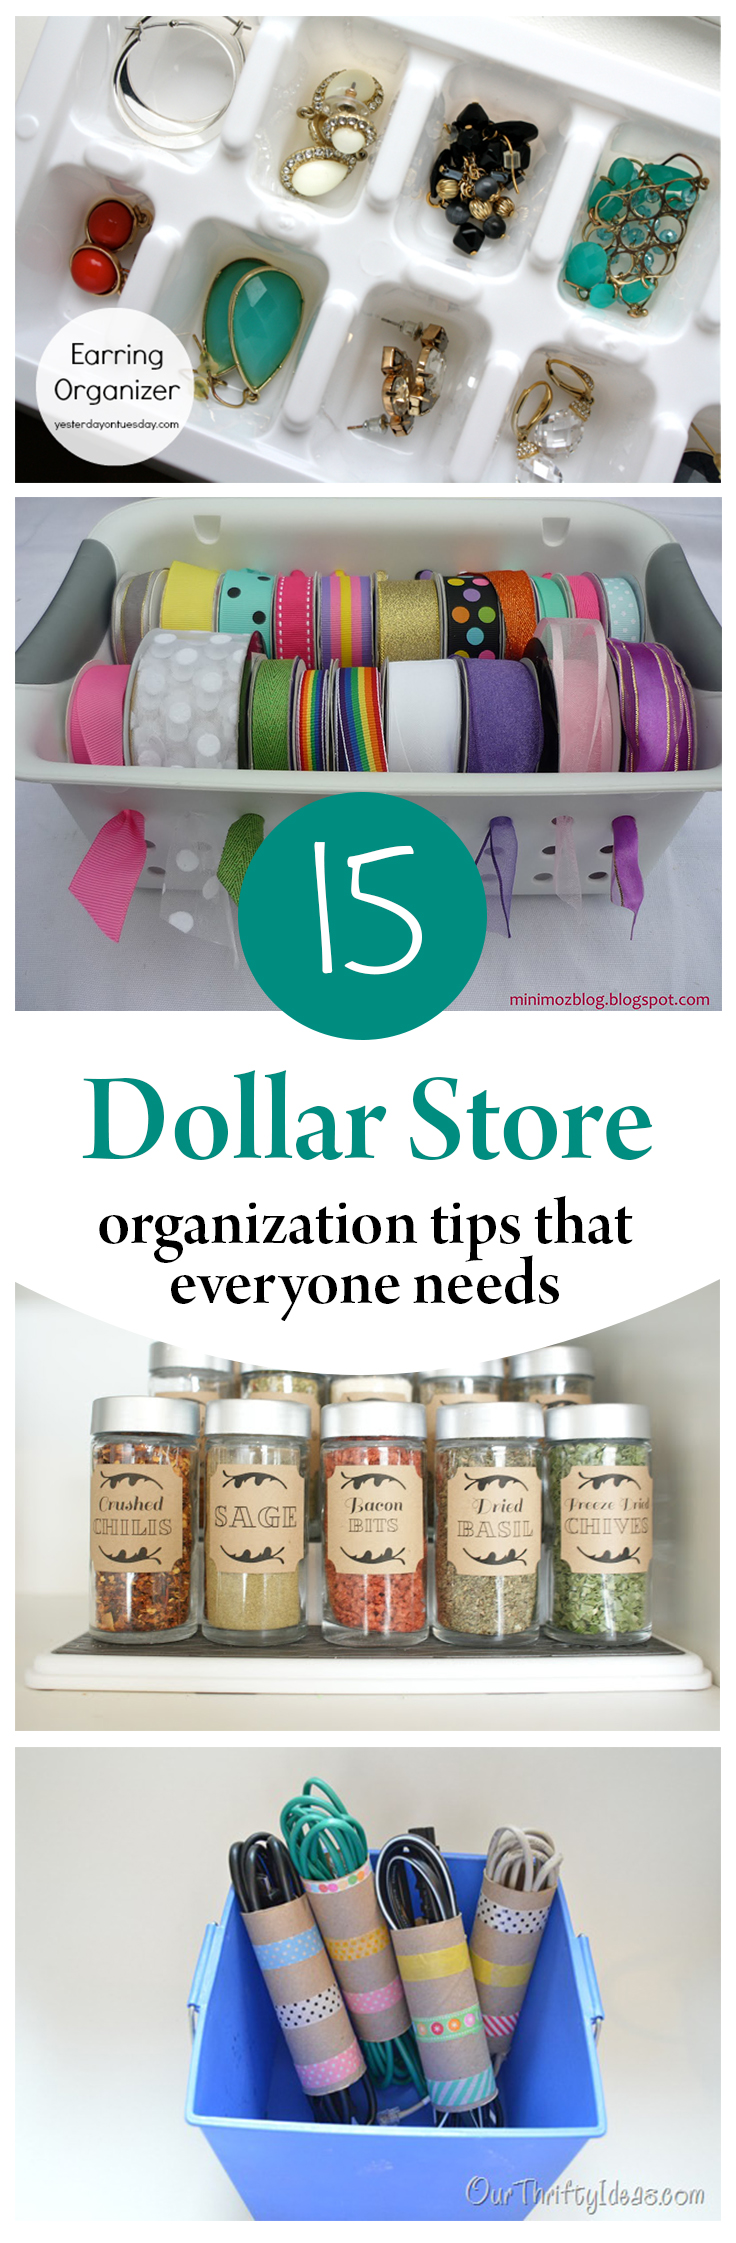 Organization, home organization, easy home organizers, popular pin, DIY organization, organized home, frugal organization, organize frugally.